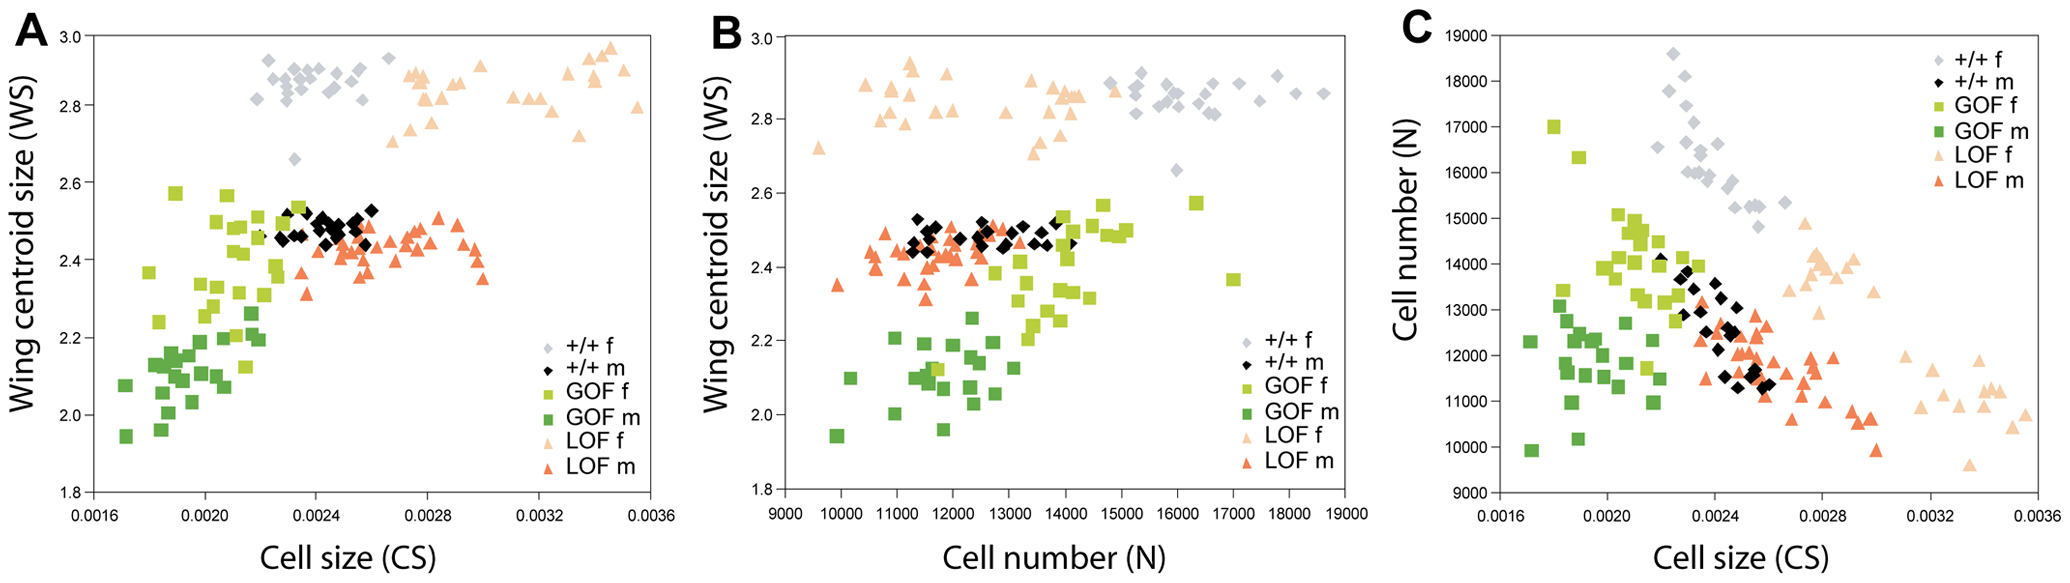 Relationship among wing size, cell size, and cell number.